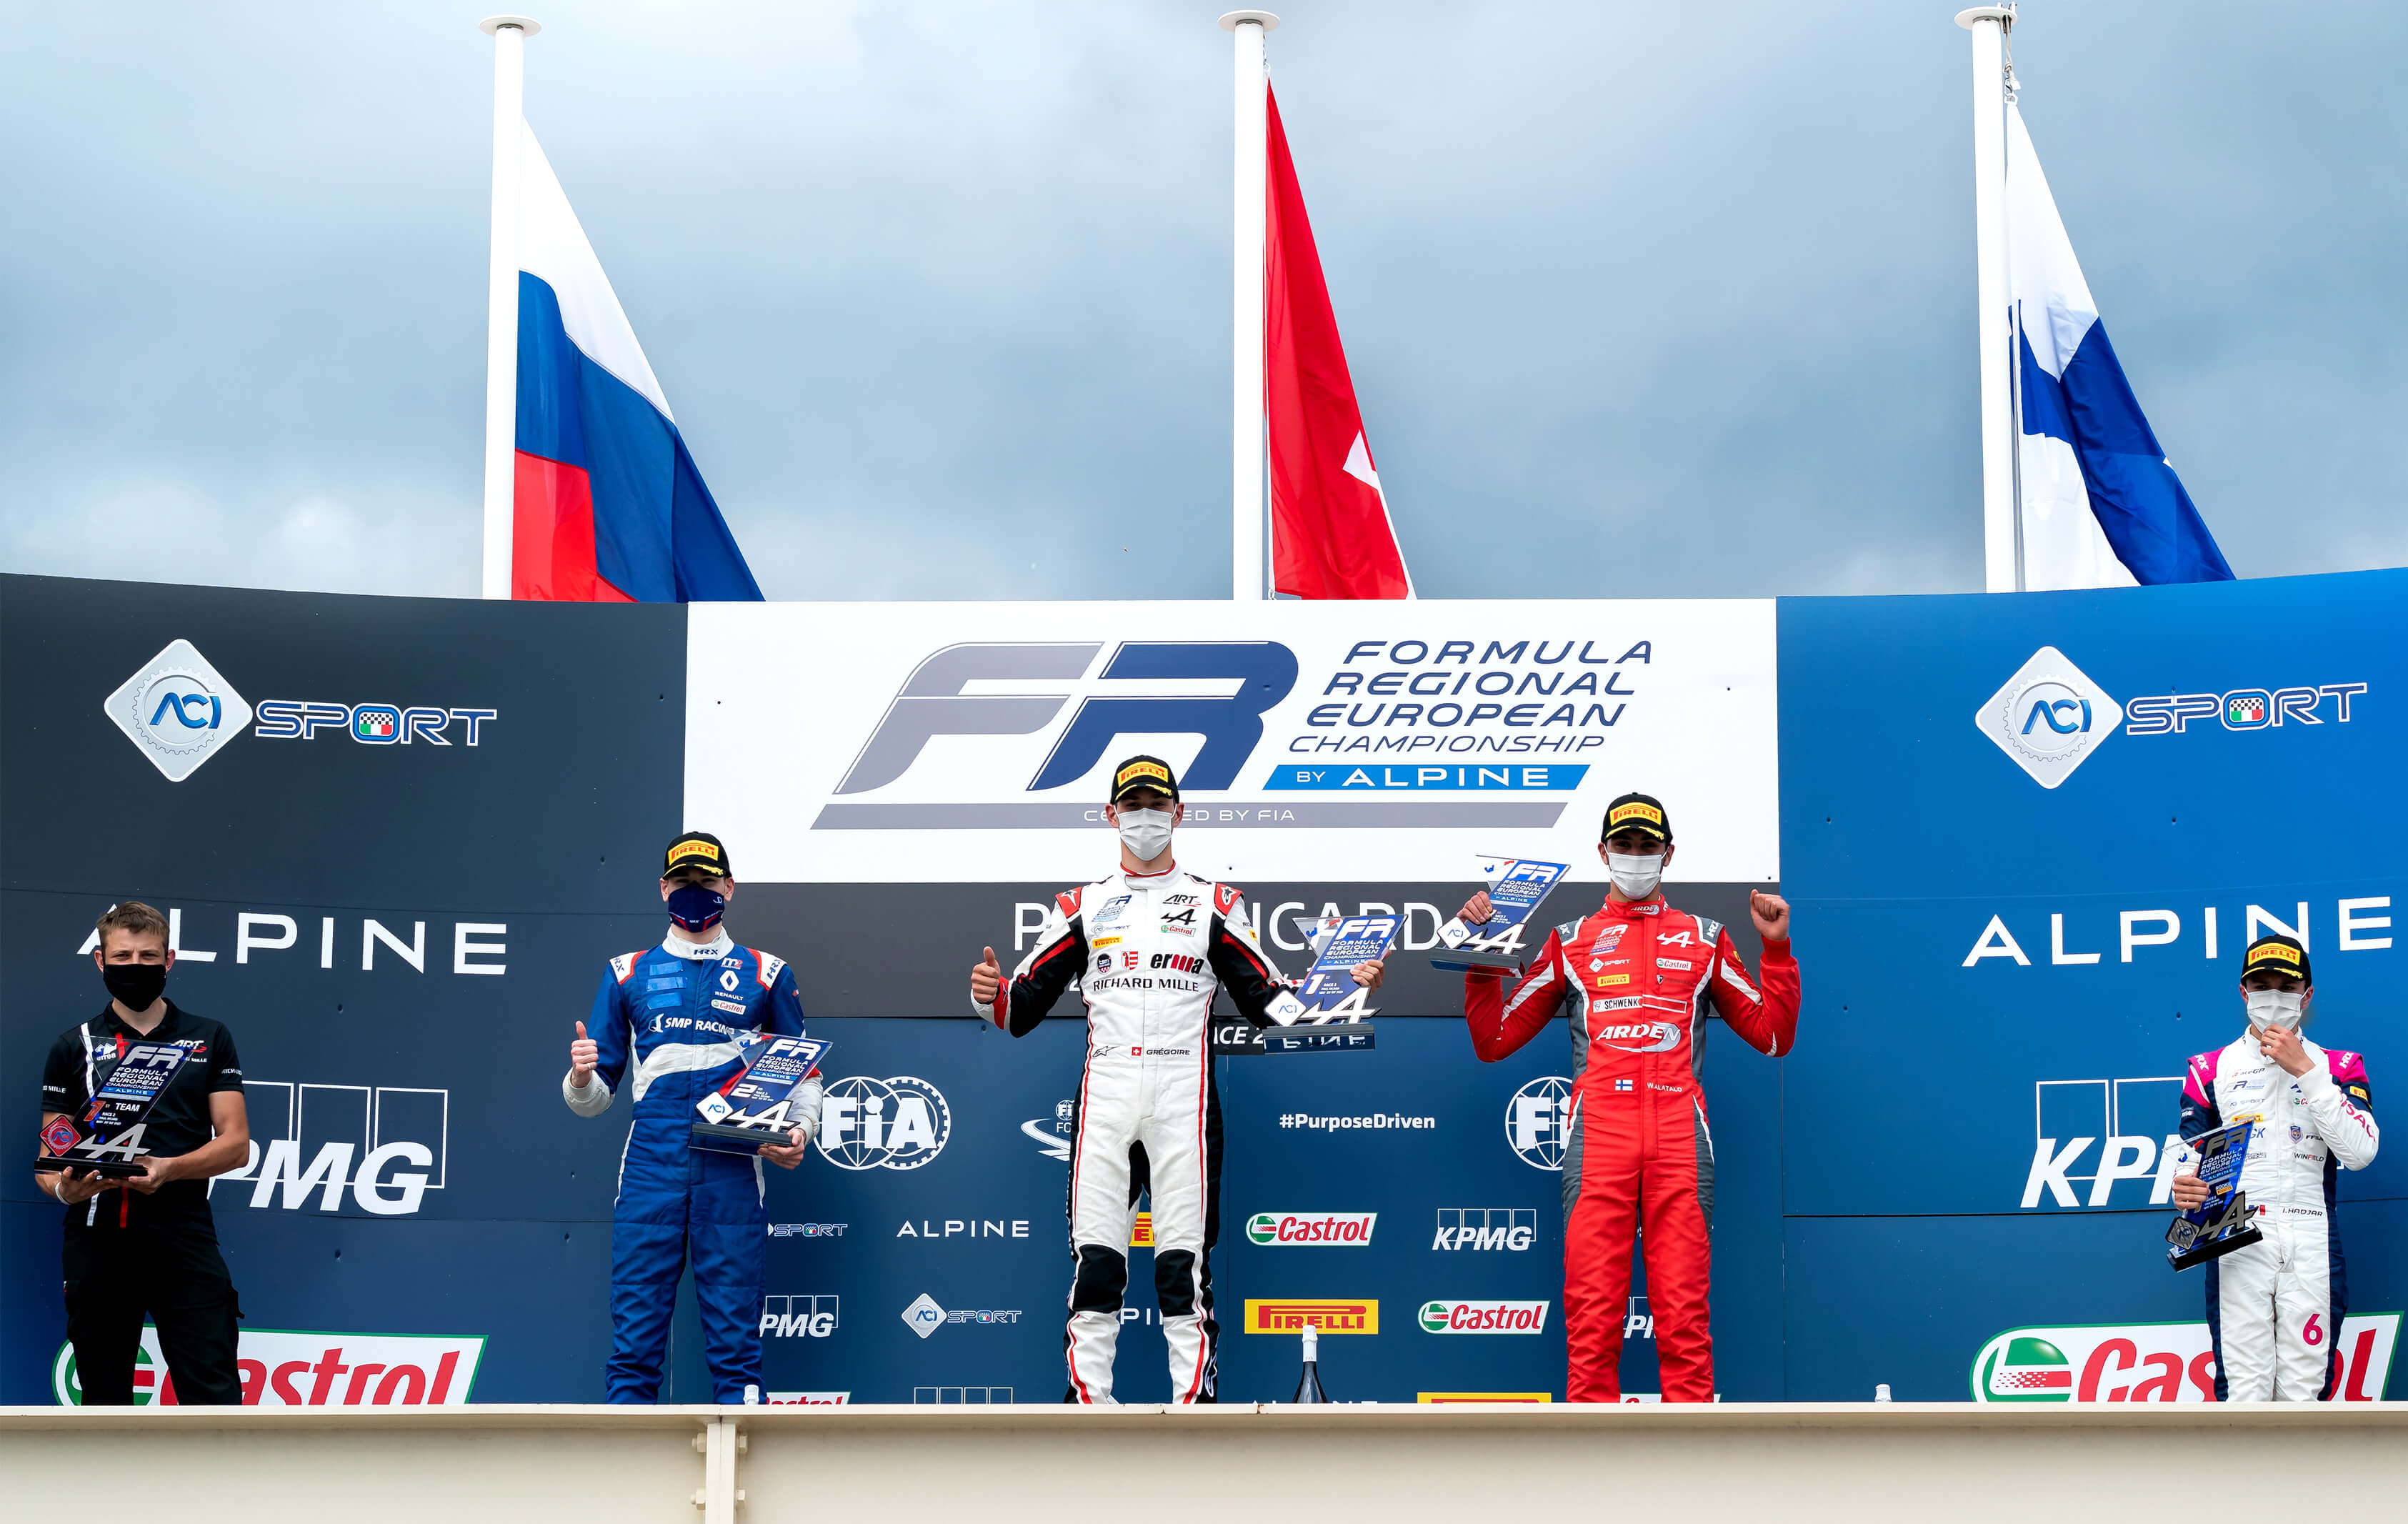 A win, two pole positions and a podium finish in Le Castellet